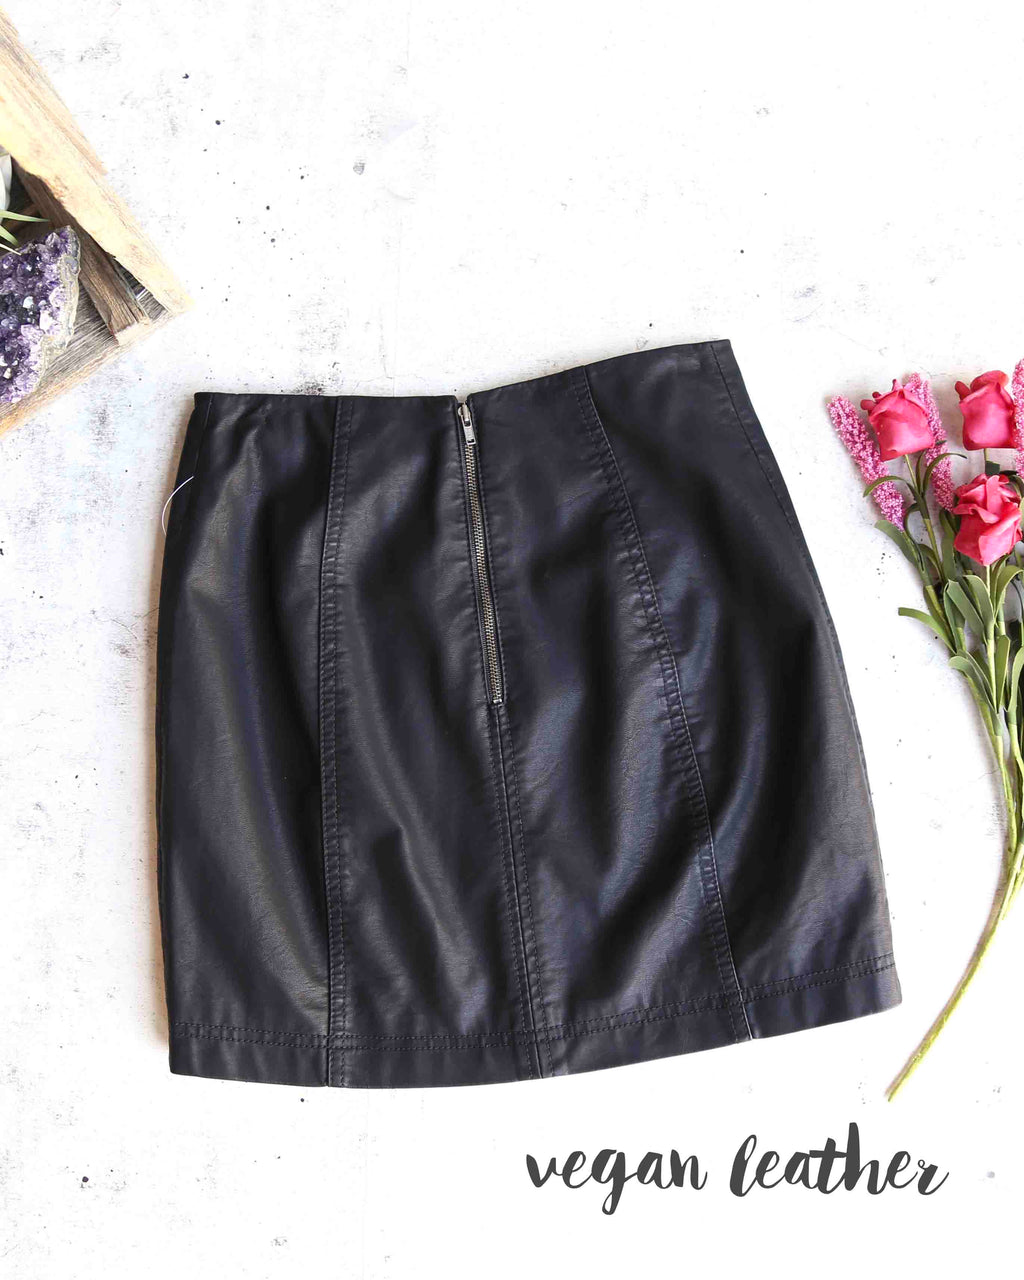 free people - modern femme novelty mini vegan leather skirt - black